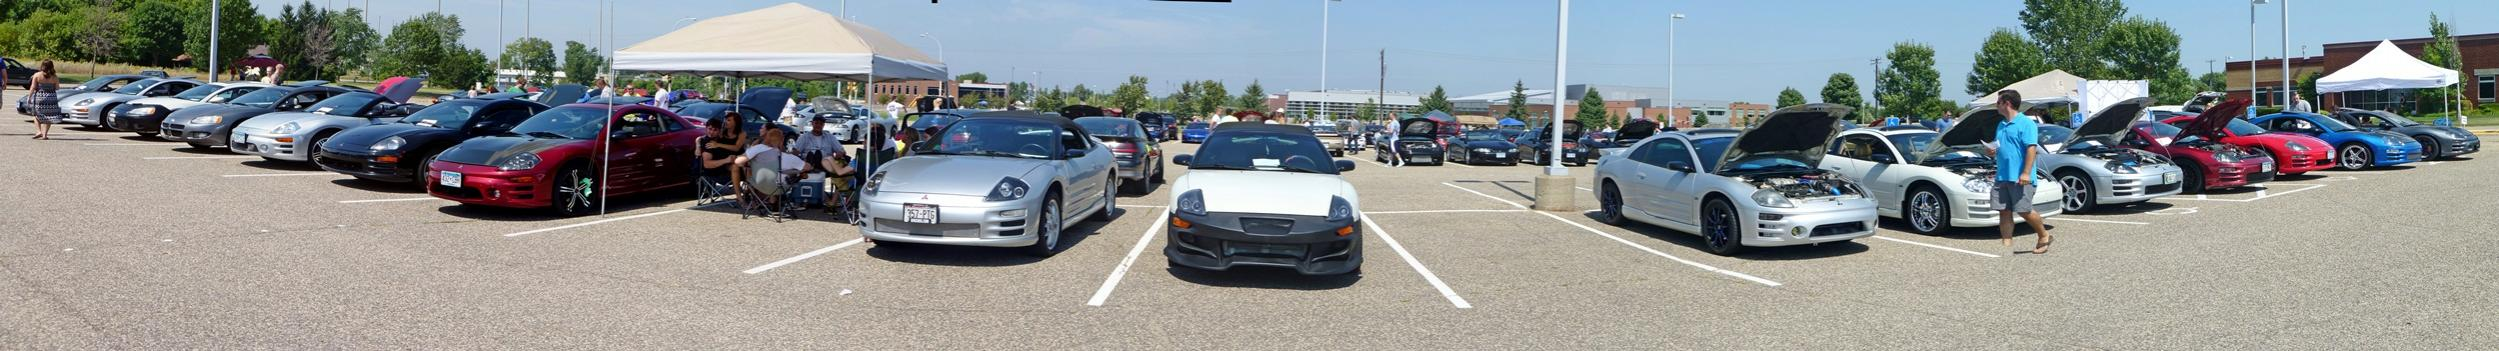 All Mitsubishi Cookout and Car Show -- August 25th, 2013 -- Rogers, MN-p1010291_stitch1.jpg